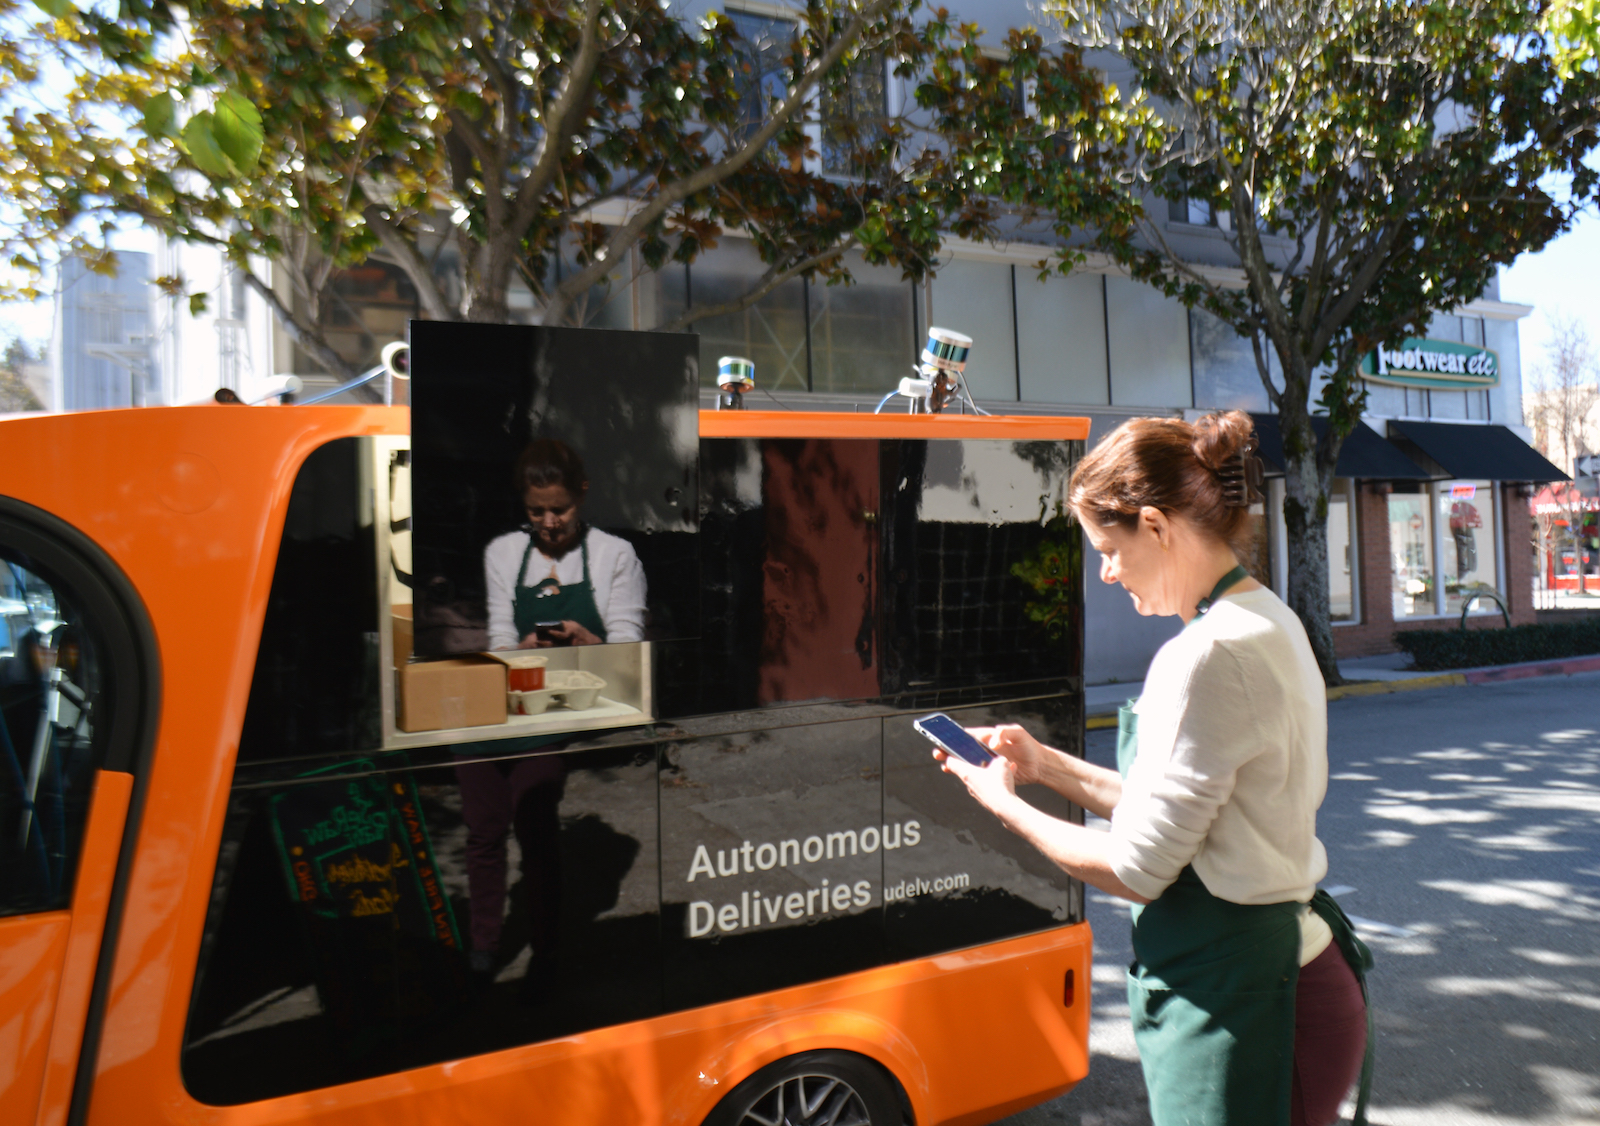 photo image Oklahoma City stores will deliver groceries with autonomous vehicles